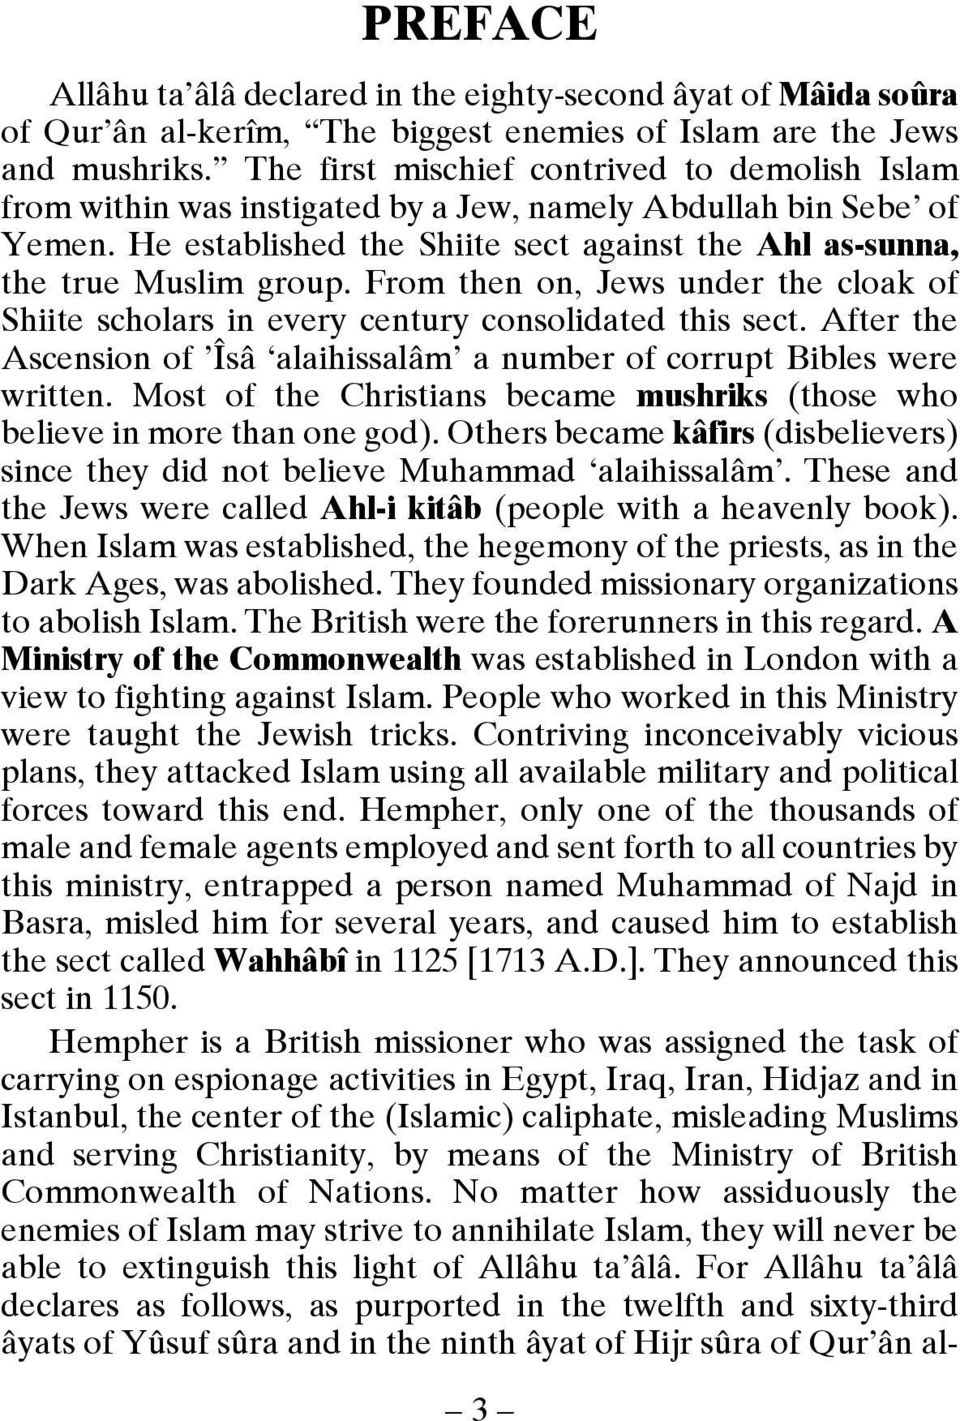 From then on, Jews under the cloak of Shiite scholars in every century consolidated this sect. After the Ascensionof Îsâ alaihissalâm anumberofcorruptbibleswere written.